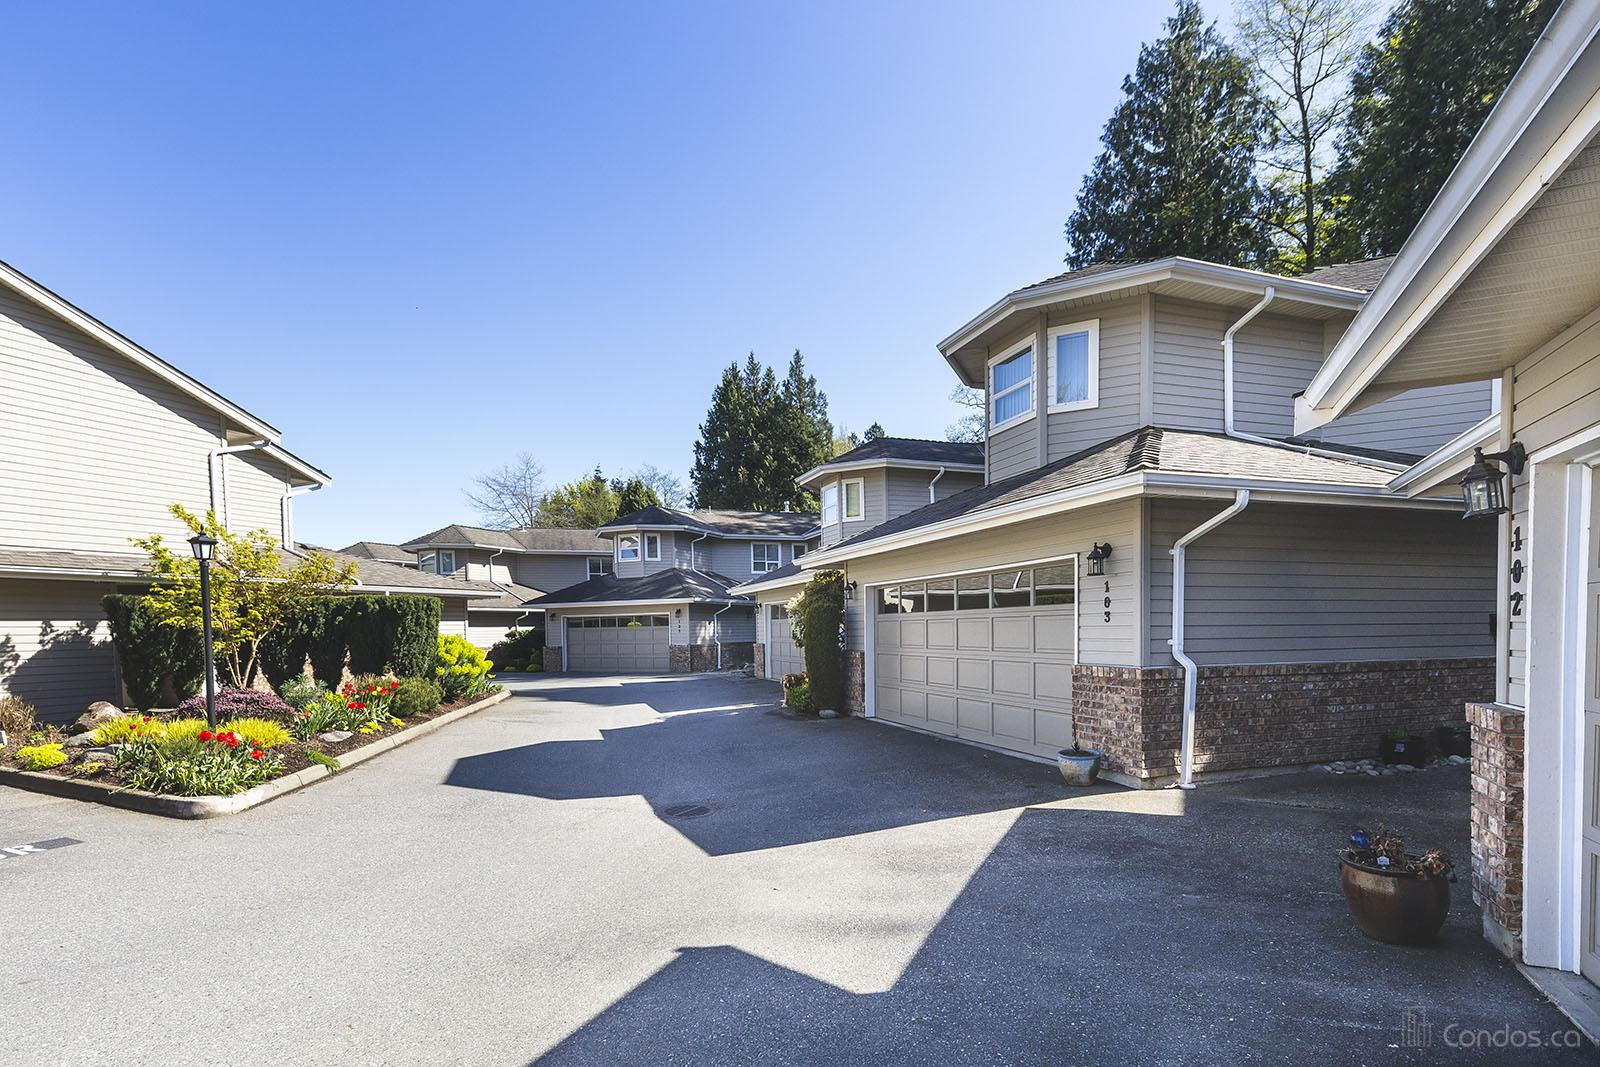 Westwinds at 16350 14 Ave, Surrey 1